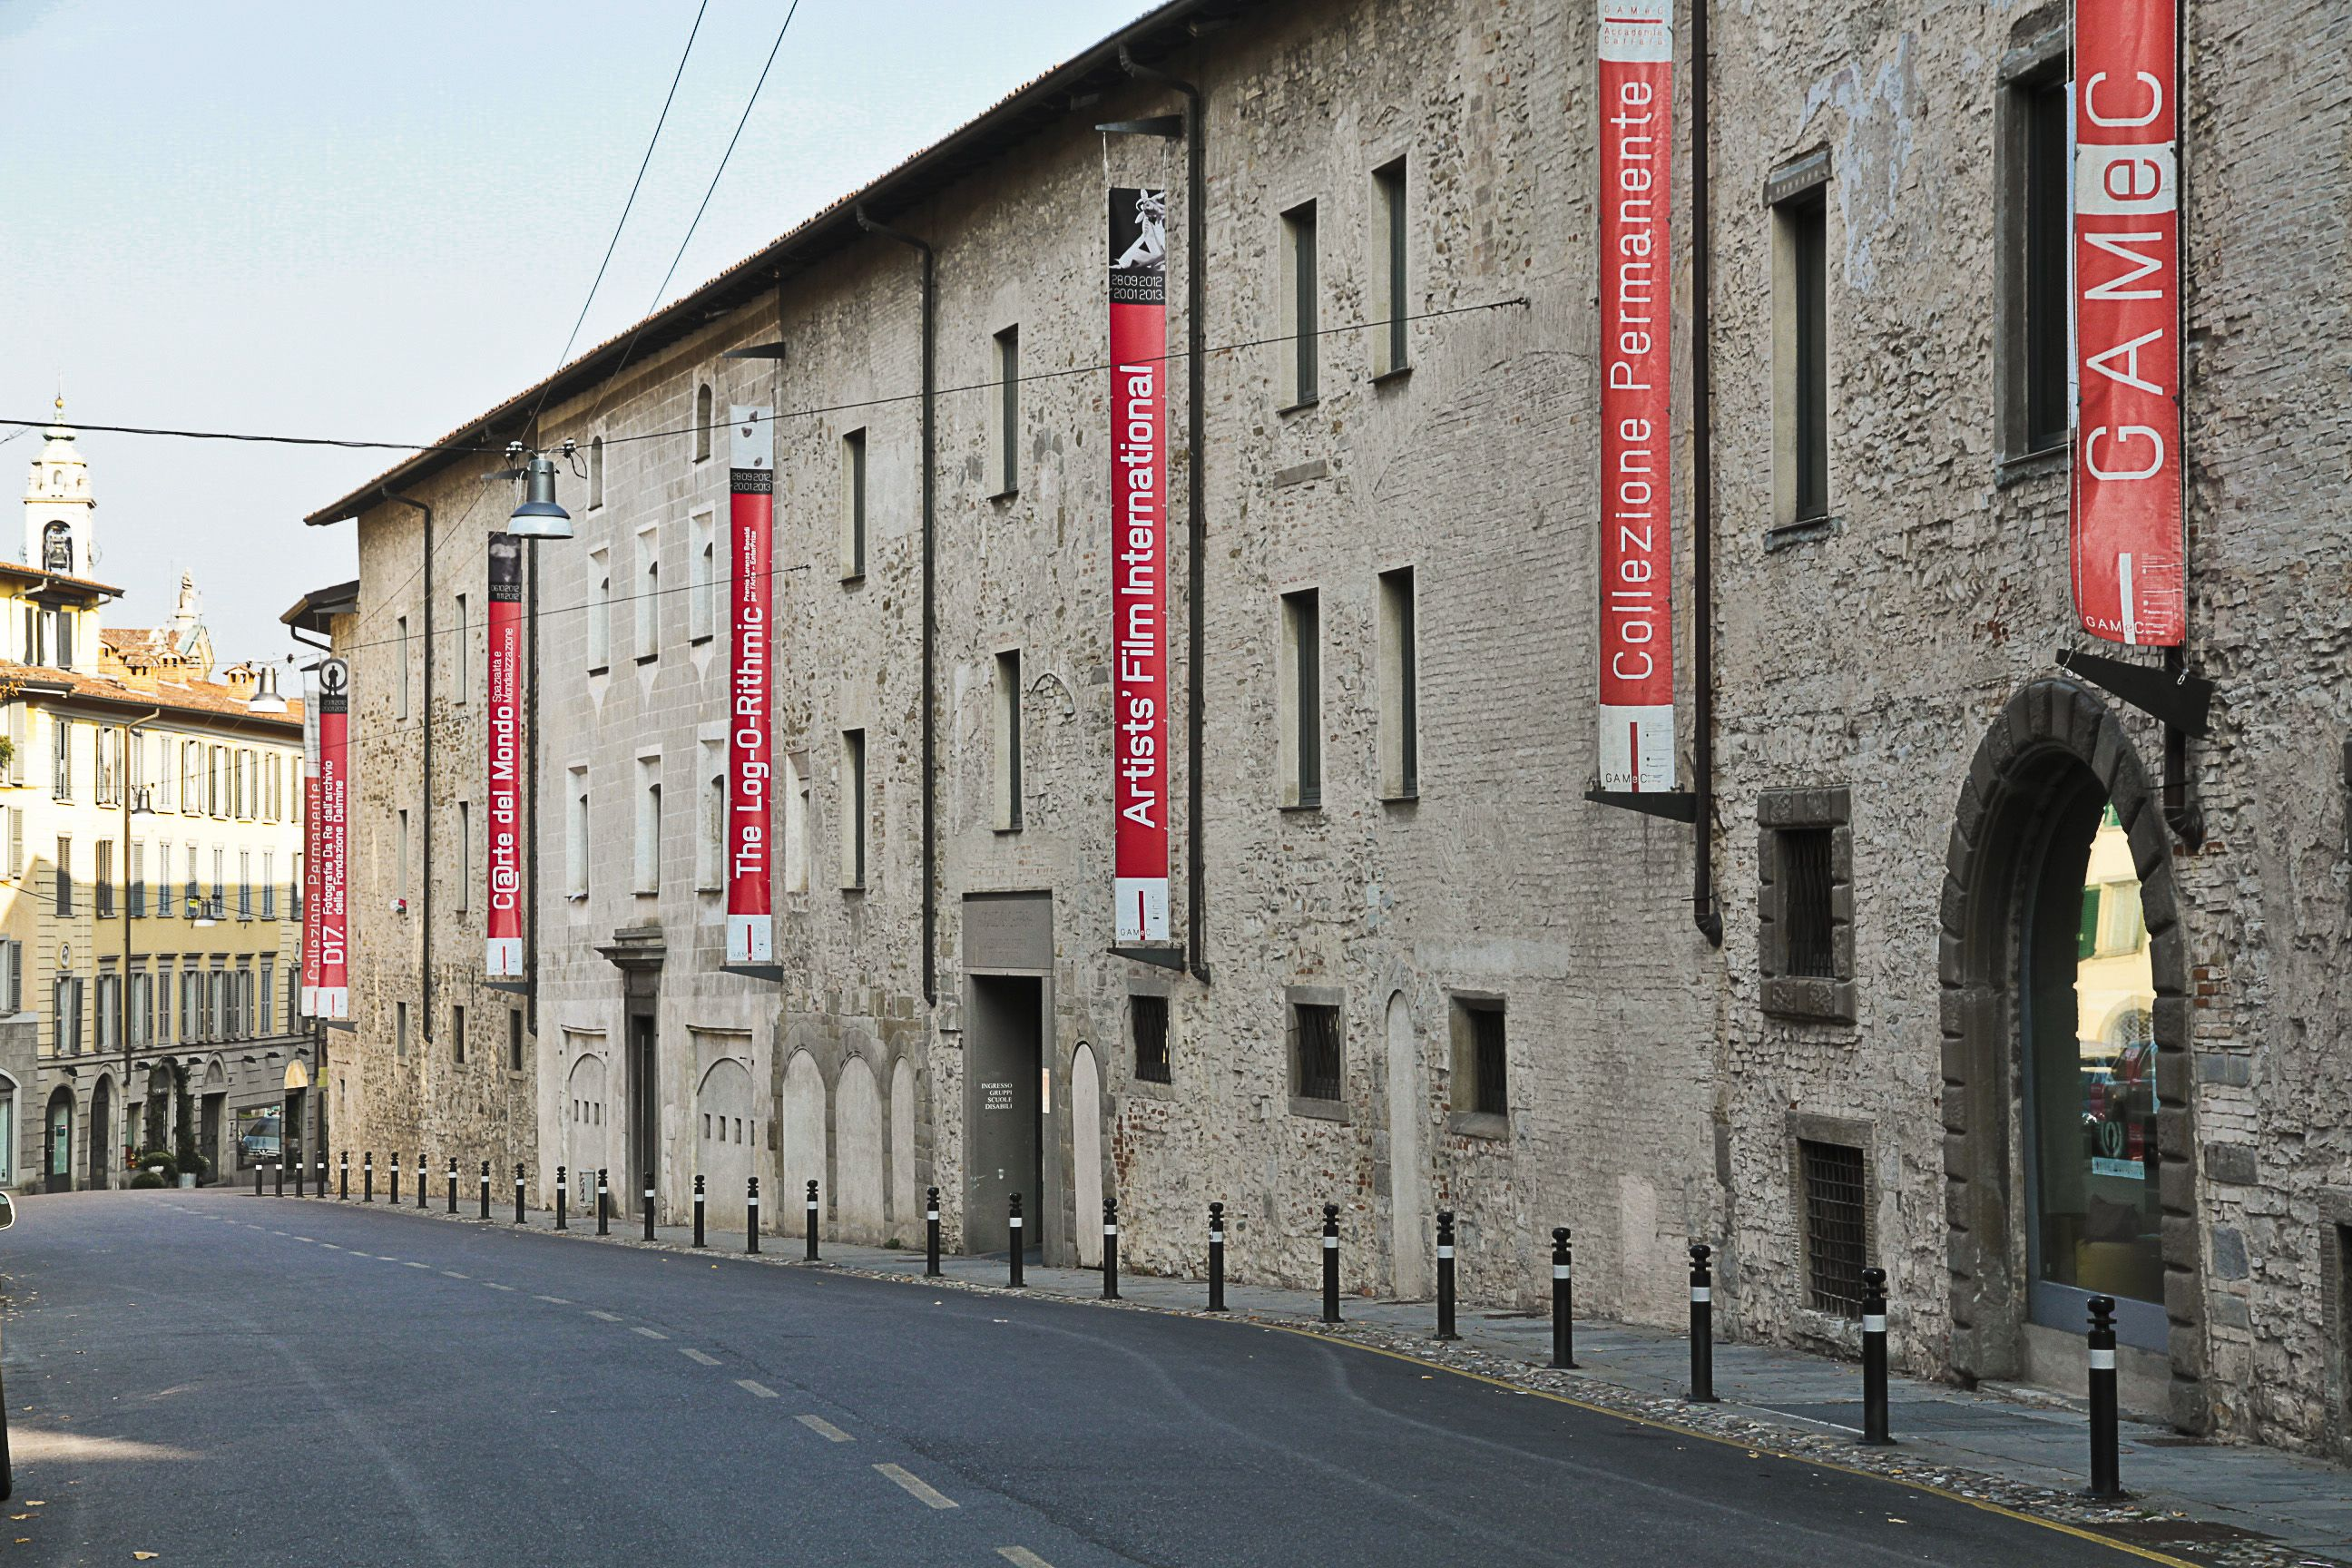 GAMeC, the Gallery of Modern and Contemporary Art in #Bergamo ...